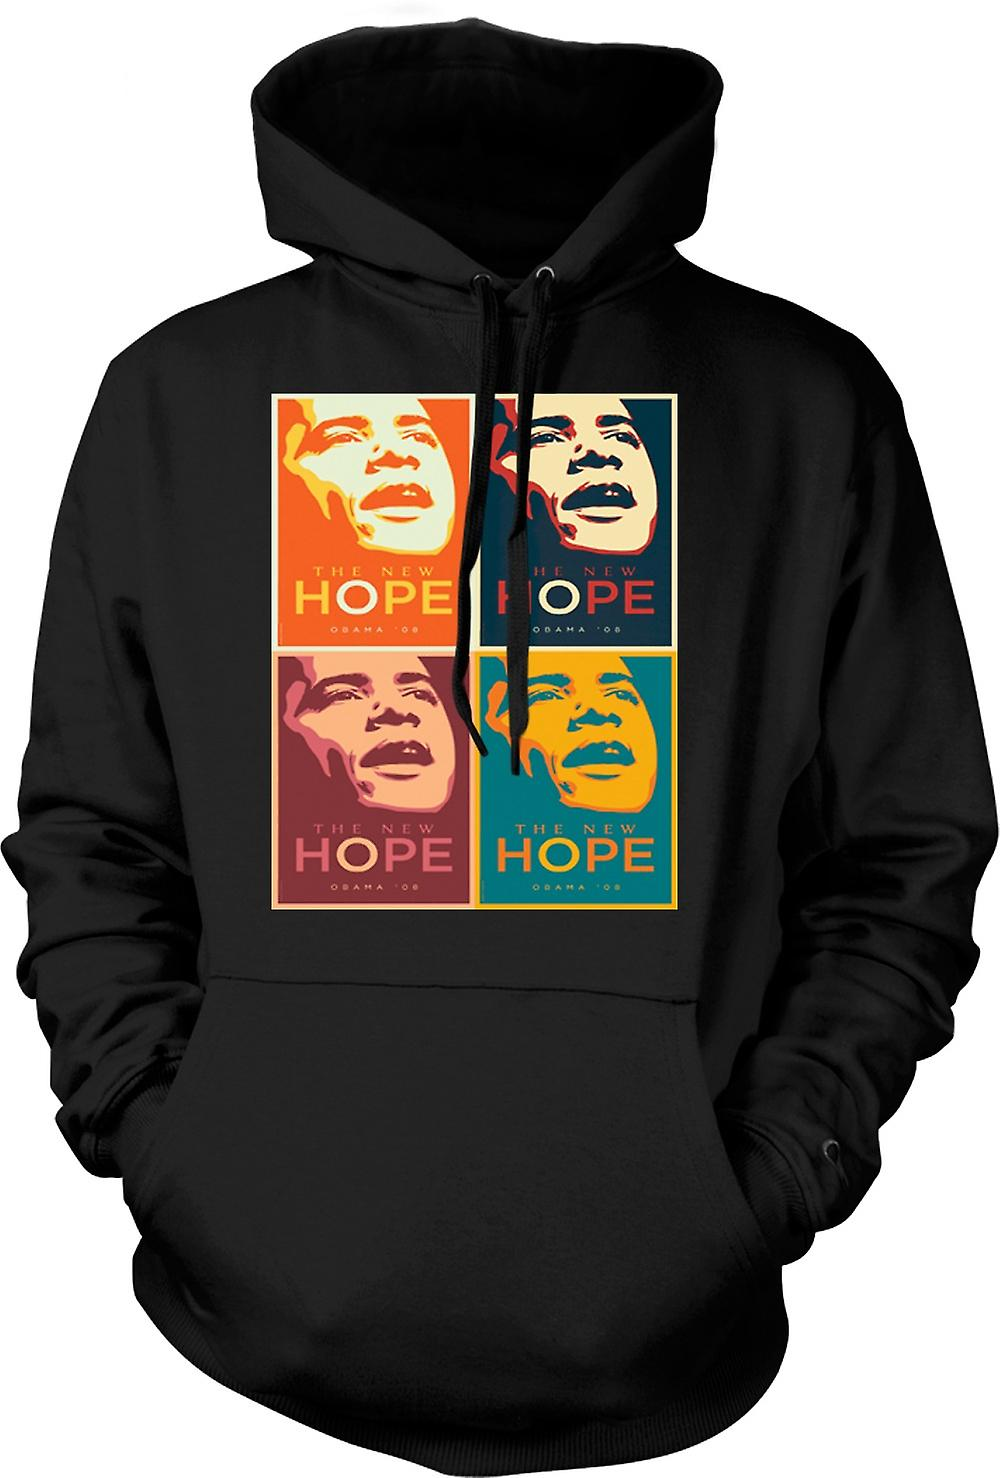 Mens Hoodie - Obama 08 The New Hope - Warhol